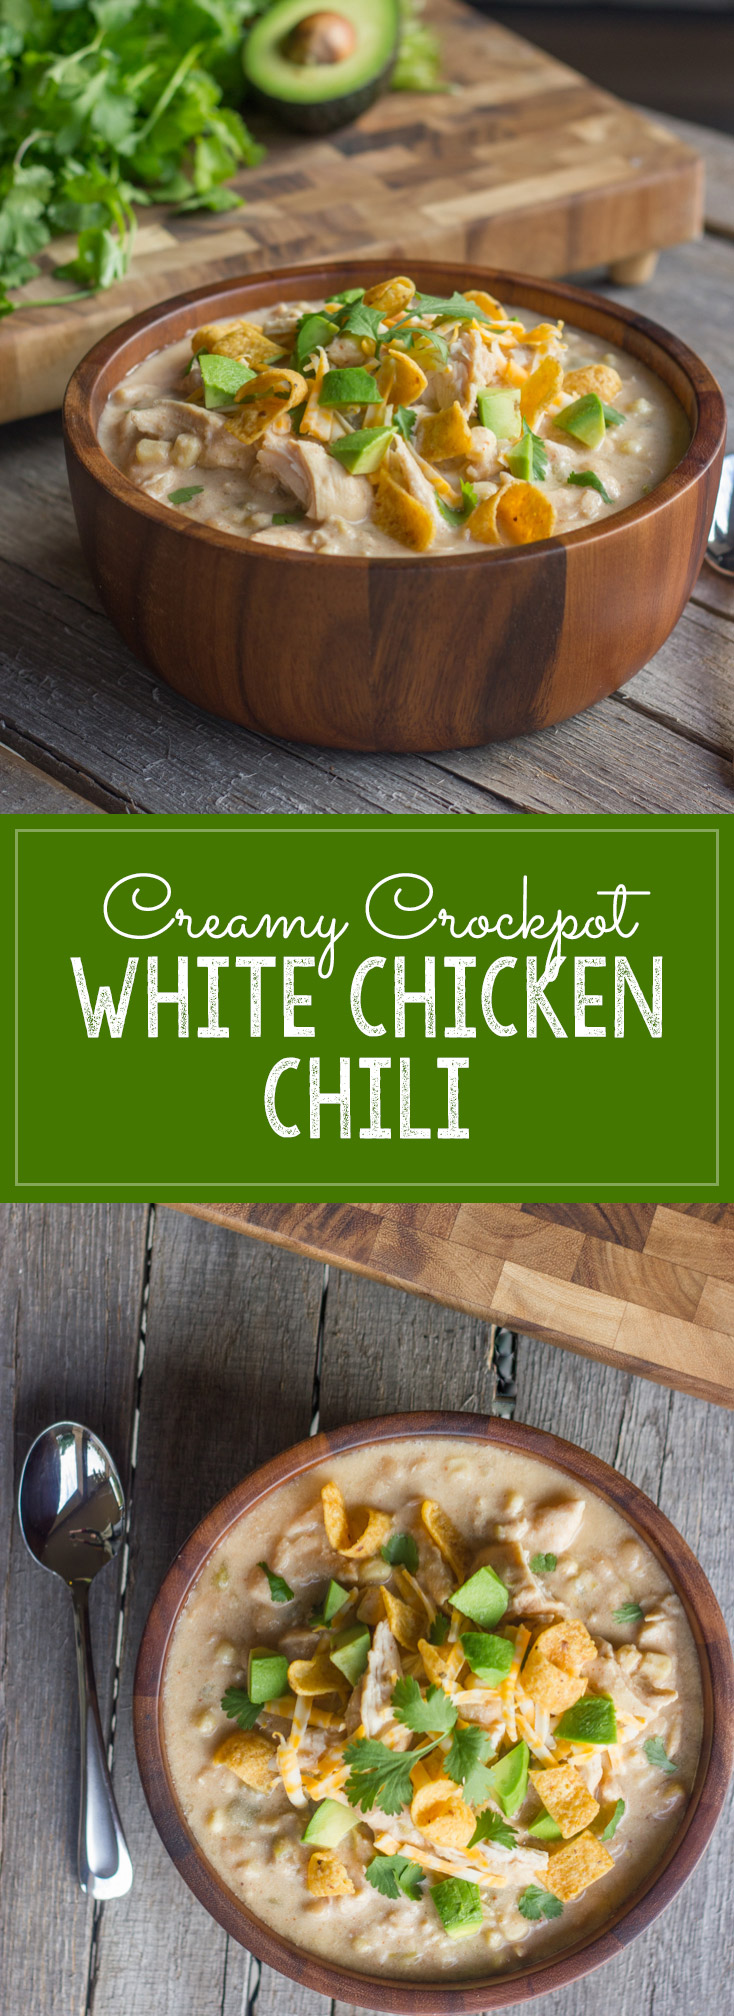 A family favorite made healthier, and so easy too! No cream of chicken soup or seasoning packets.